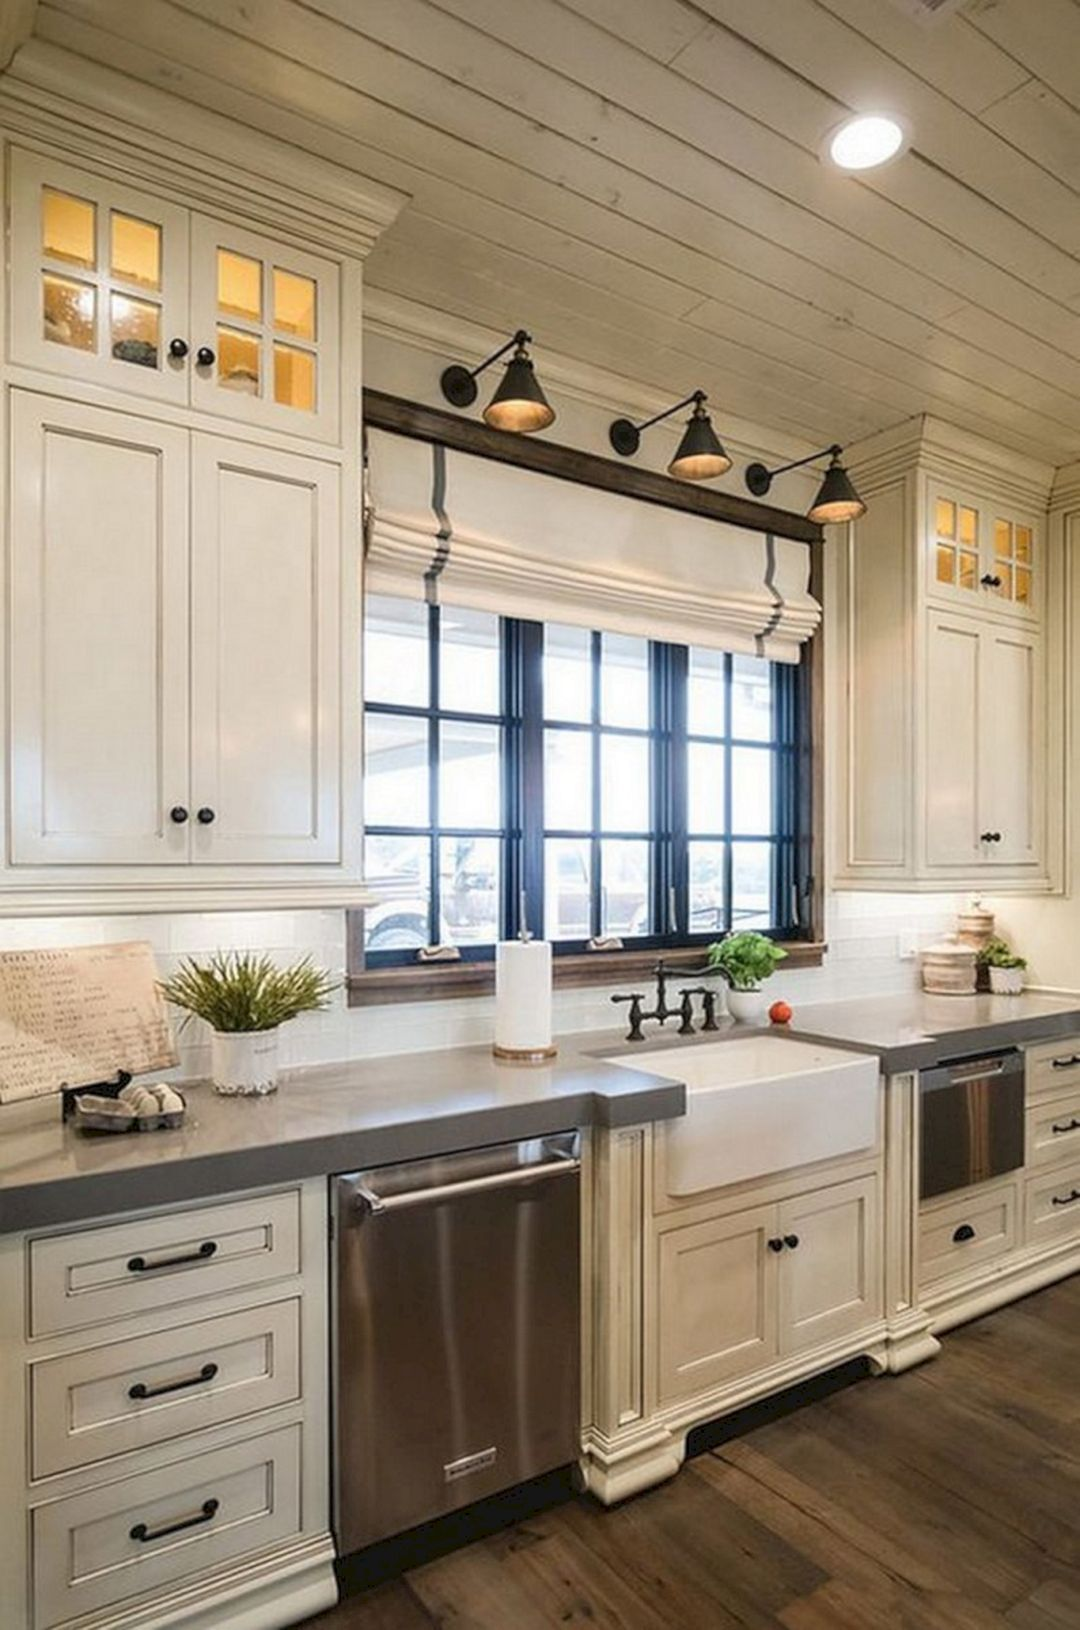 Country Rustic Country White Kitchen Ideas Novocom Top